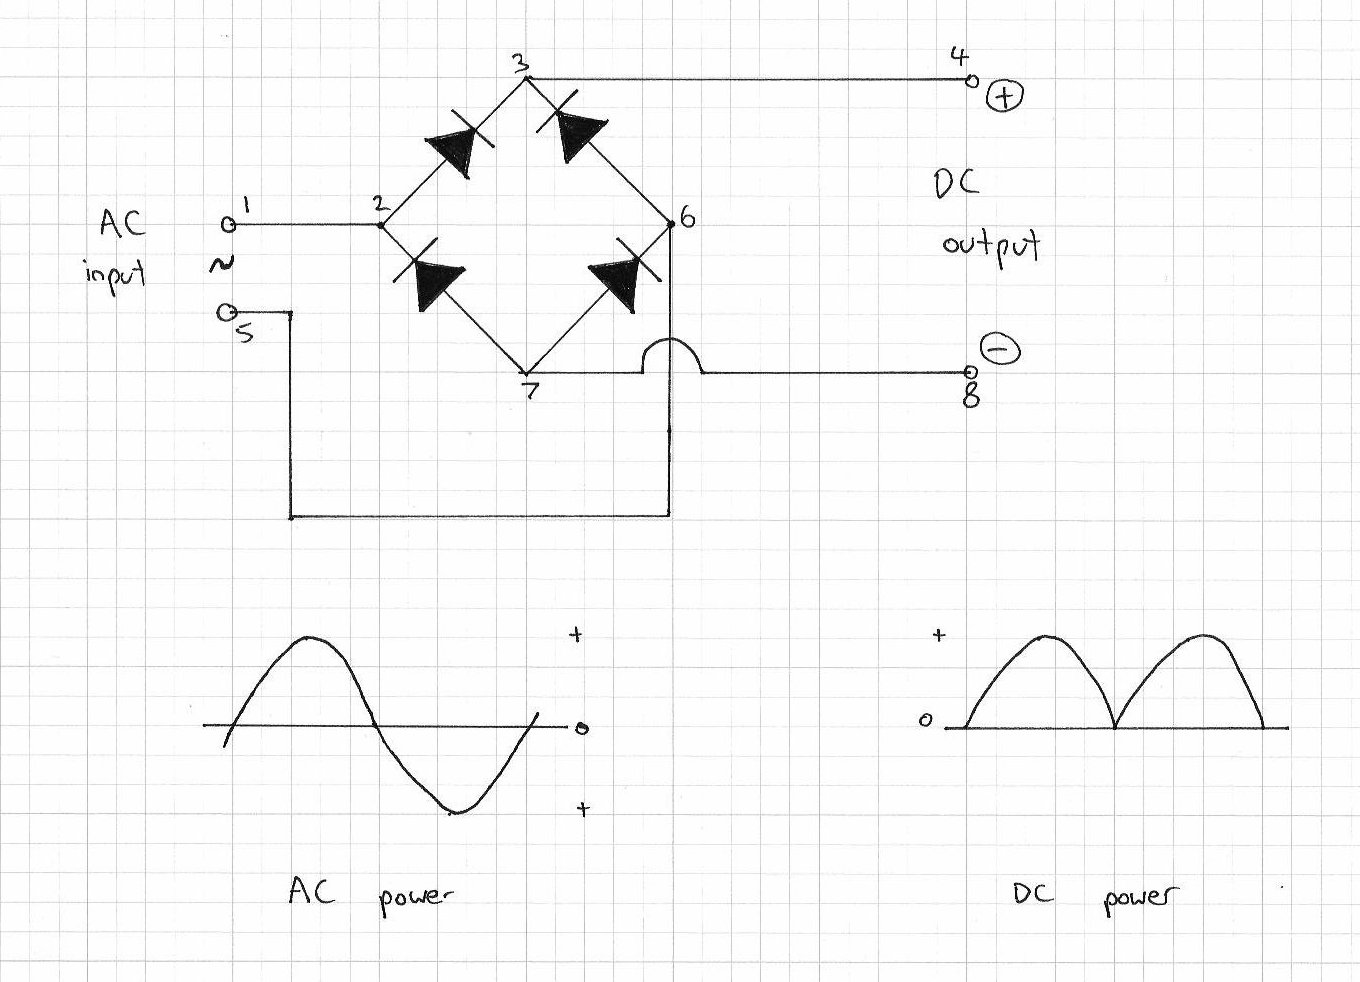 dc to voltage converter schematic